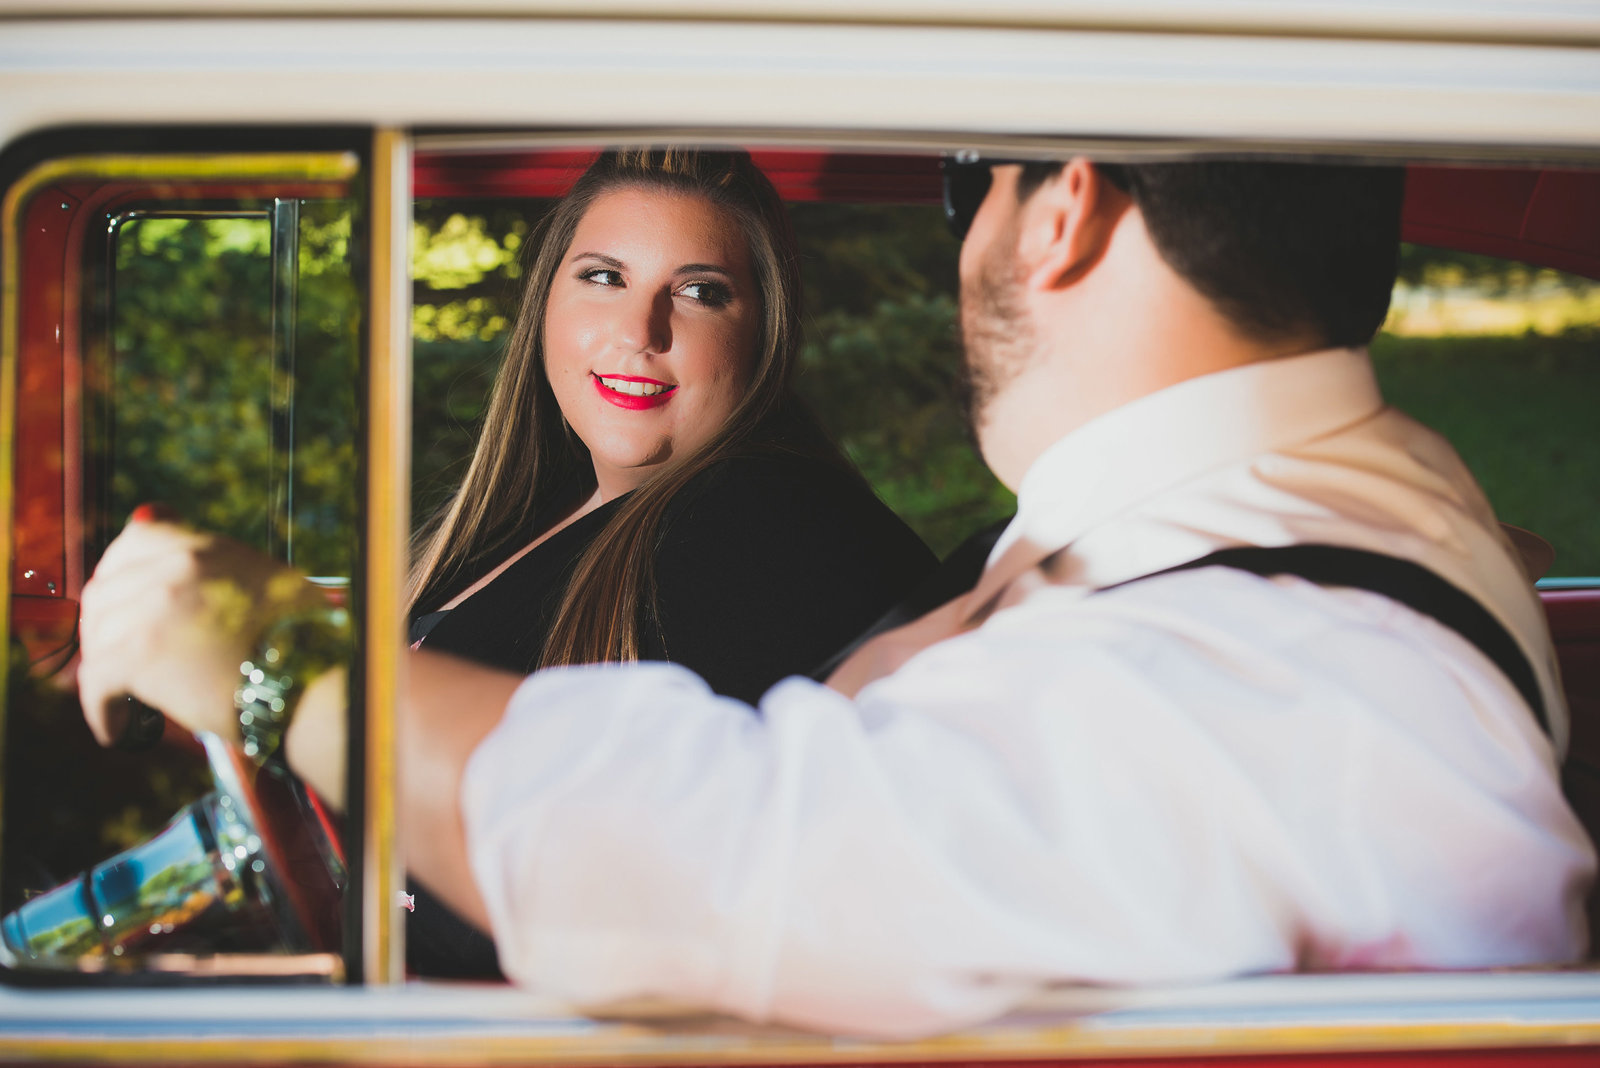 Retro_Pinup_Car_engagement_session_Nj041